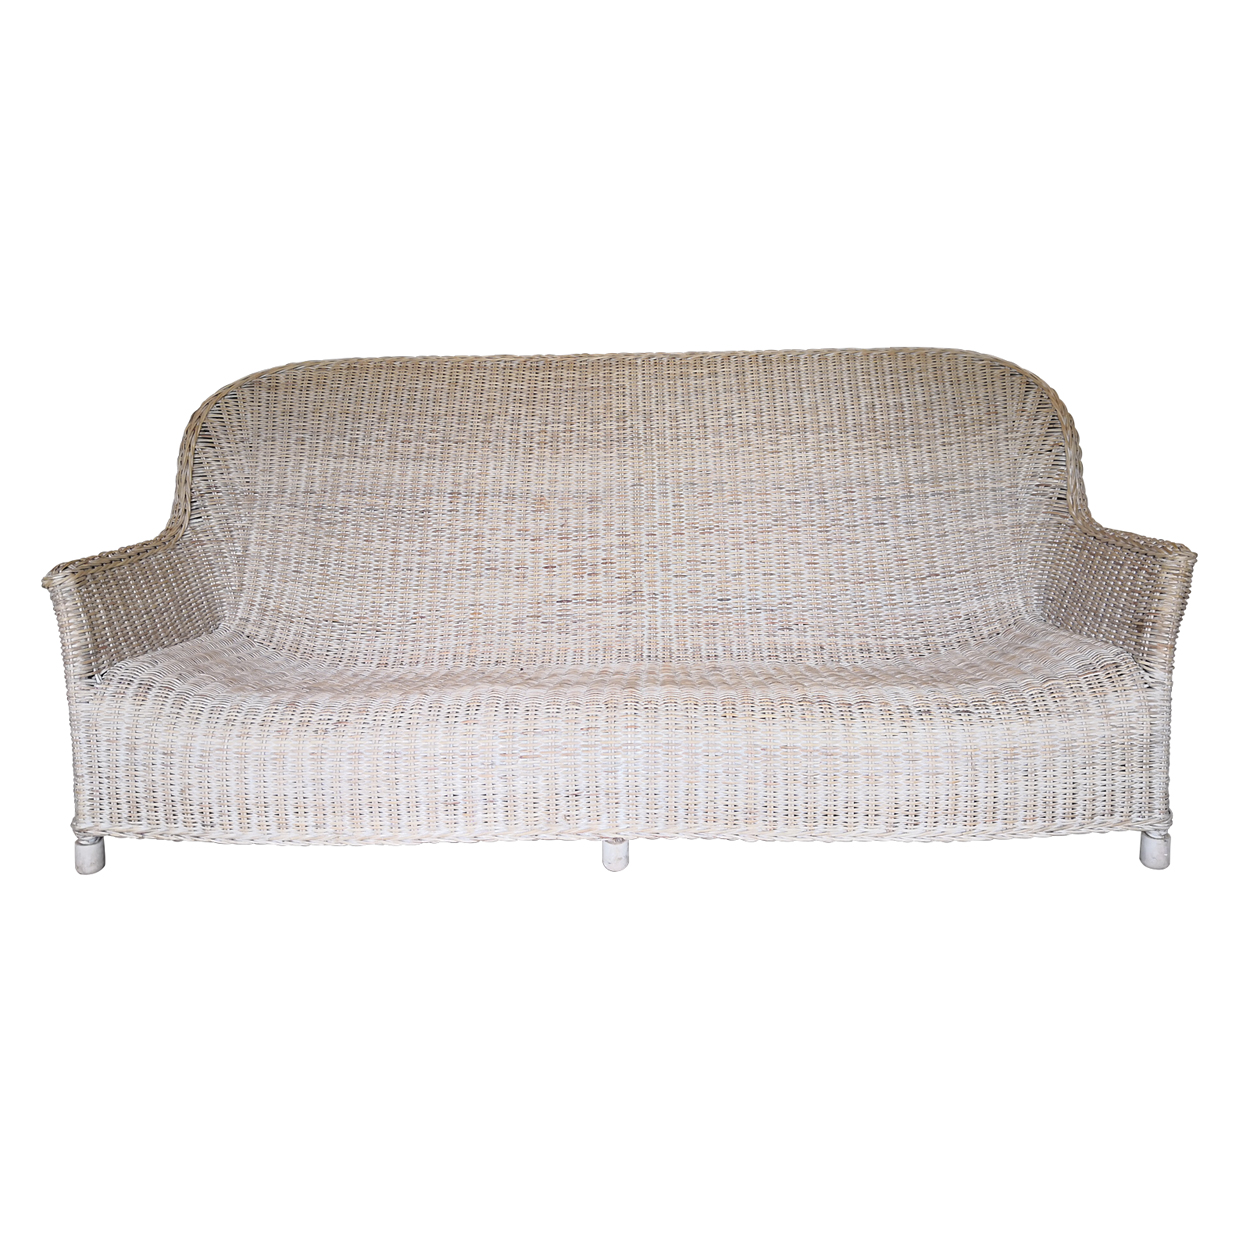 Two Design Lovers three piece cane sofa set with fabric cushions, front no cushions